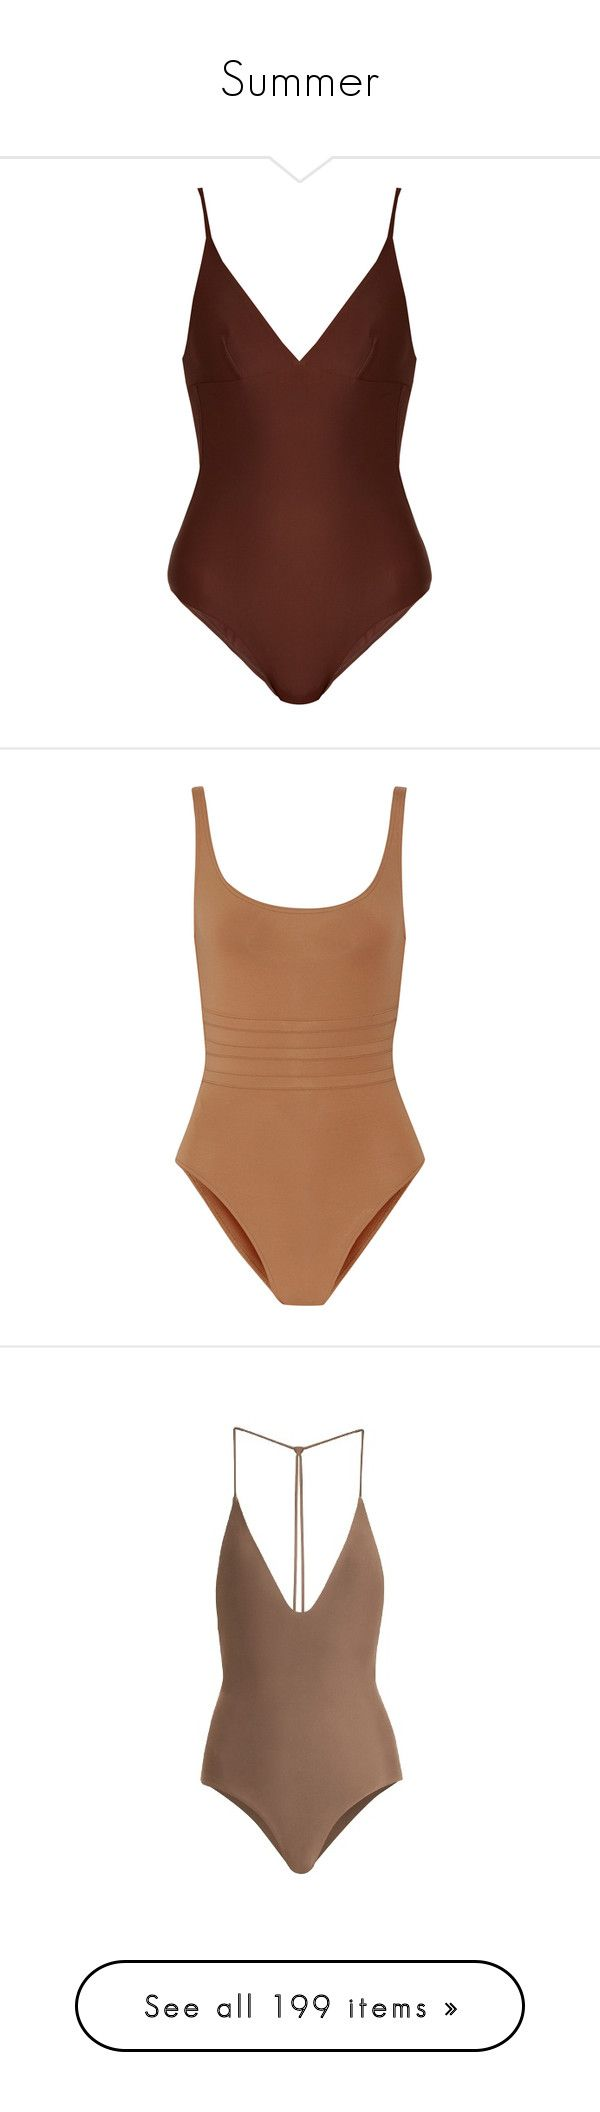 """Summer"" by tenindvr ❤ liked on Polyvore featuring swimwear, one-piece swimsuits, brown, swimming costume, brown swimsuit, deep v neck bathing suit, one piece swimsuit, swim suits, swimsuit and tops"